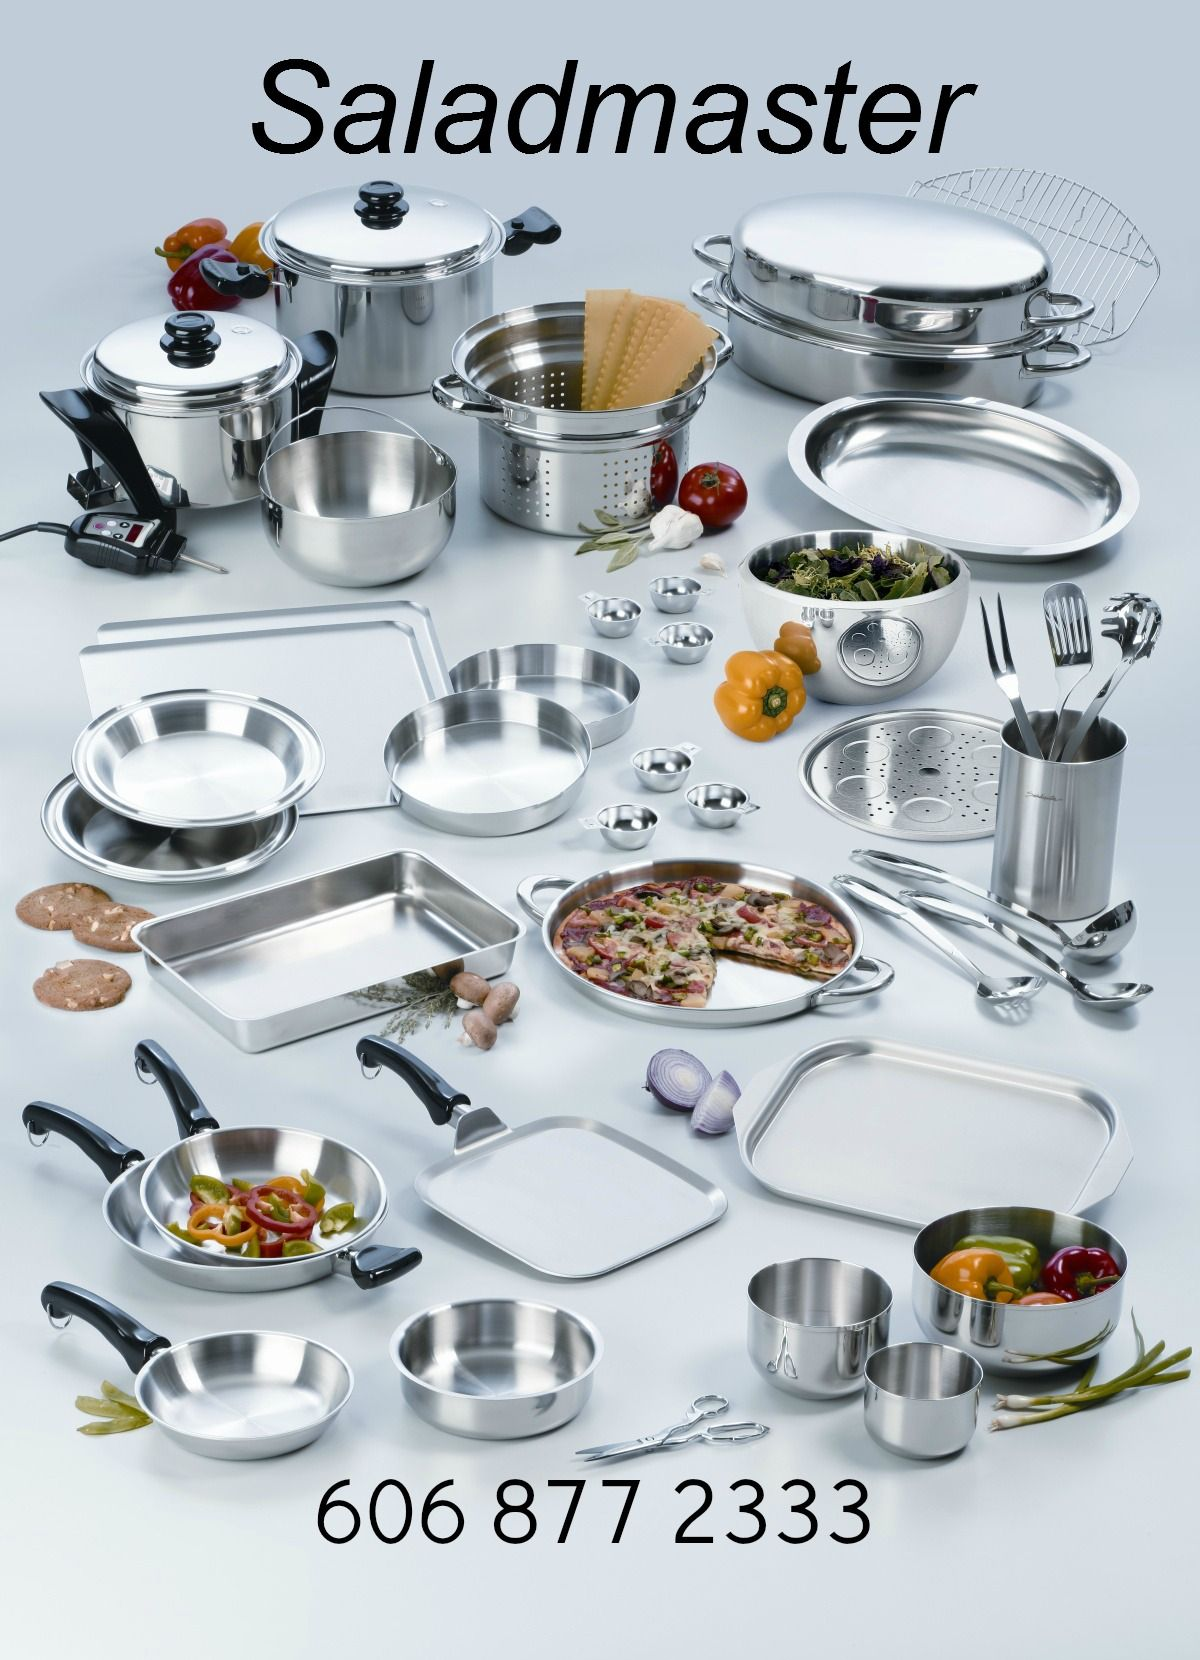 Saladmaster Cookware 316 Stainless Steel, It's Cookware, Bakeware ...